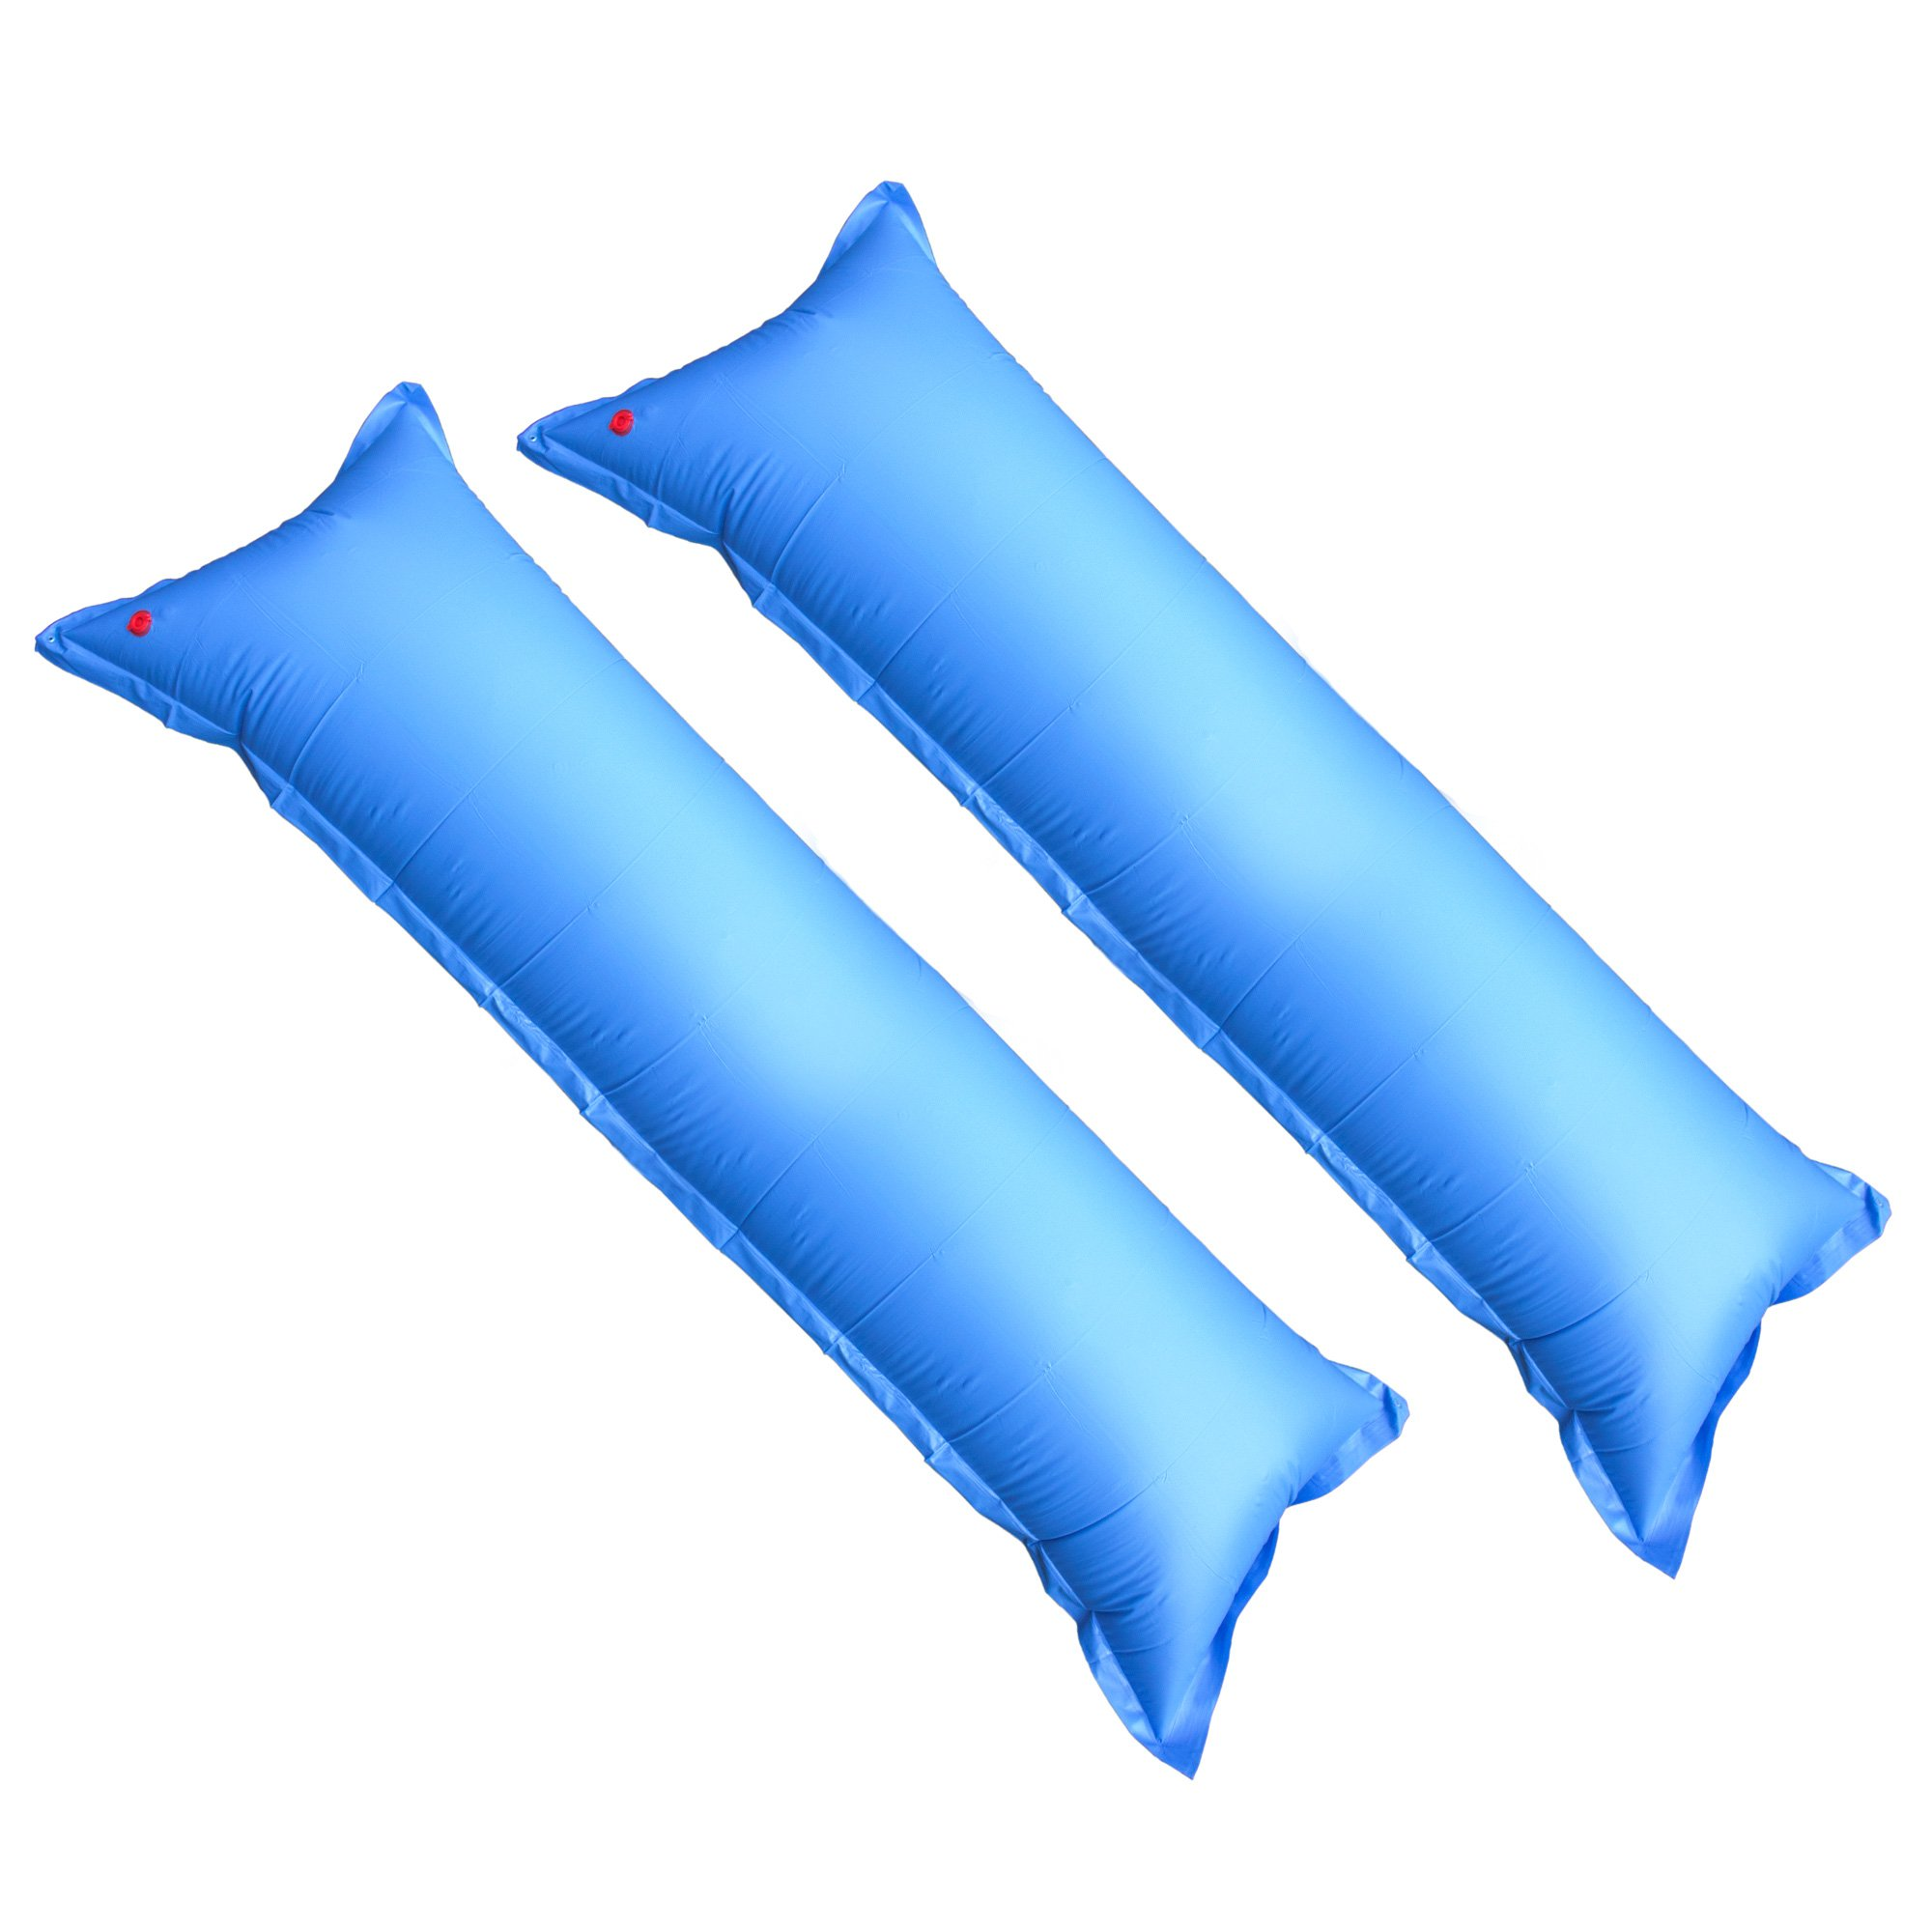 Pool Mate 1-3749-02 Heavy-Duty 4-foot x 15-foot Winterizing Air Pillow for Above Ground Swimming Pools, 2-Pack by Pool Mate